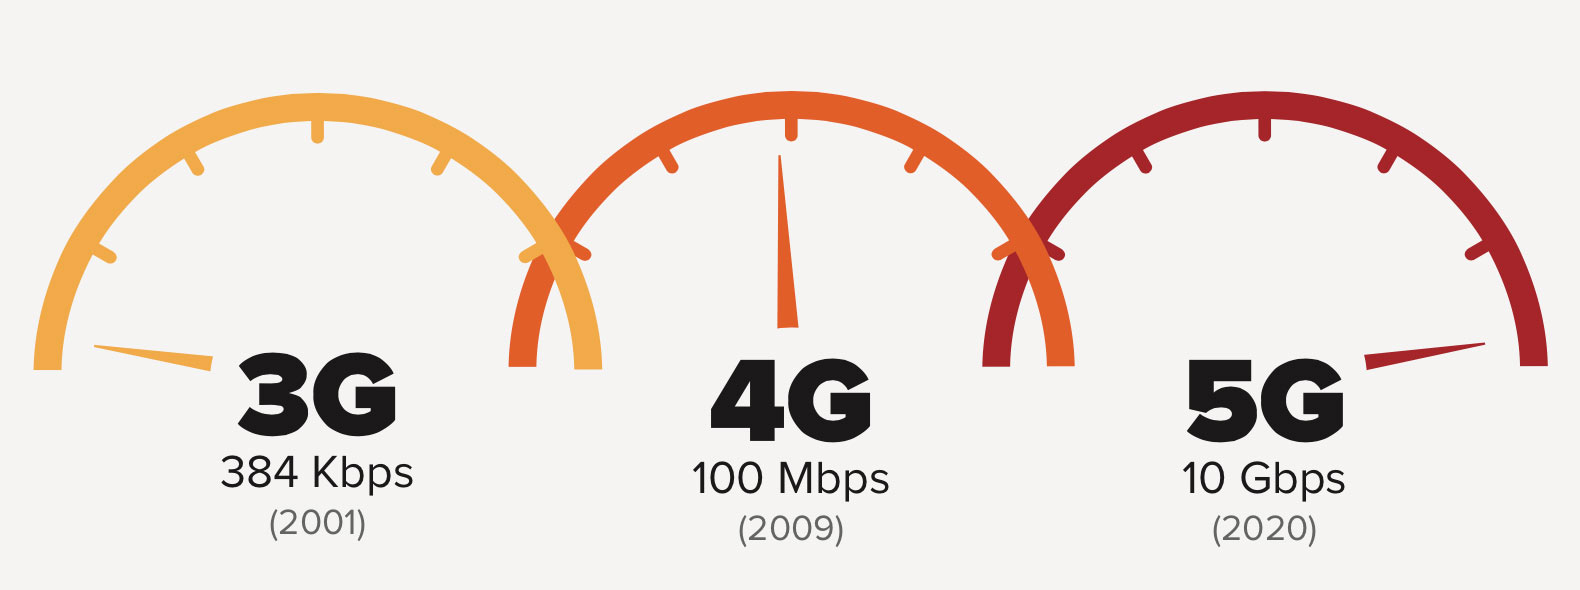 Fifth-generation networks should be dramatically faster than the 3G and 4G networks in use today.